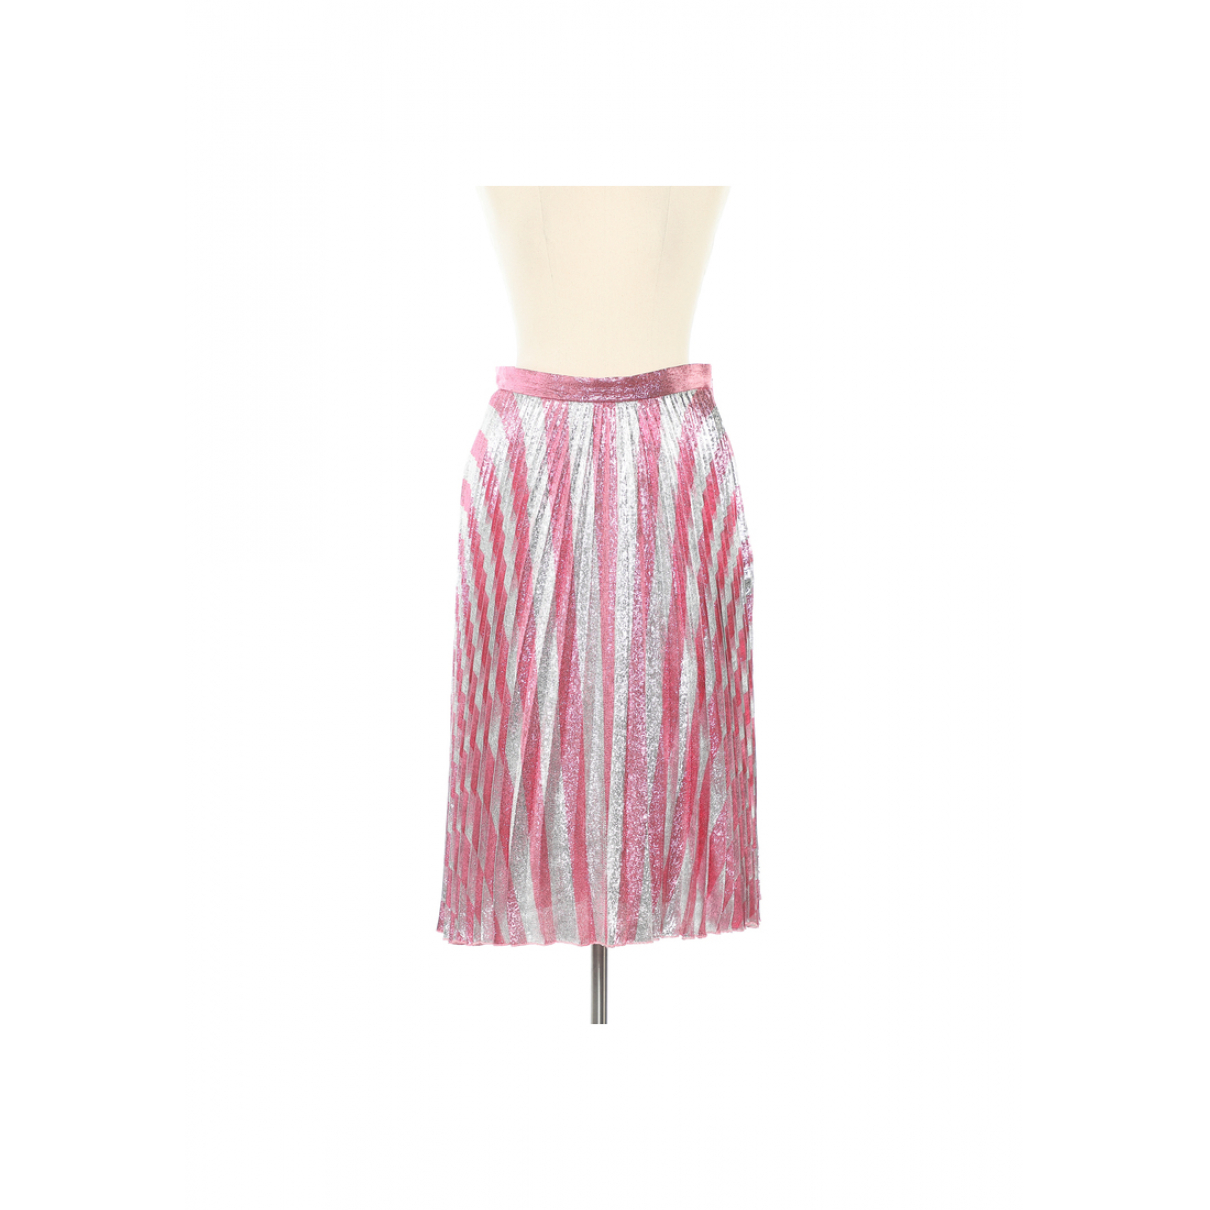 Gucci \N Pink skirt for Women 38 IT